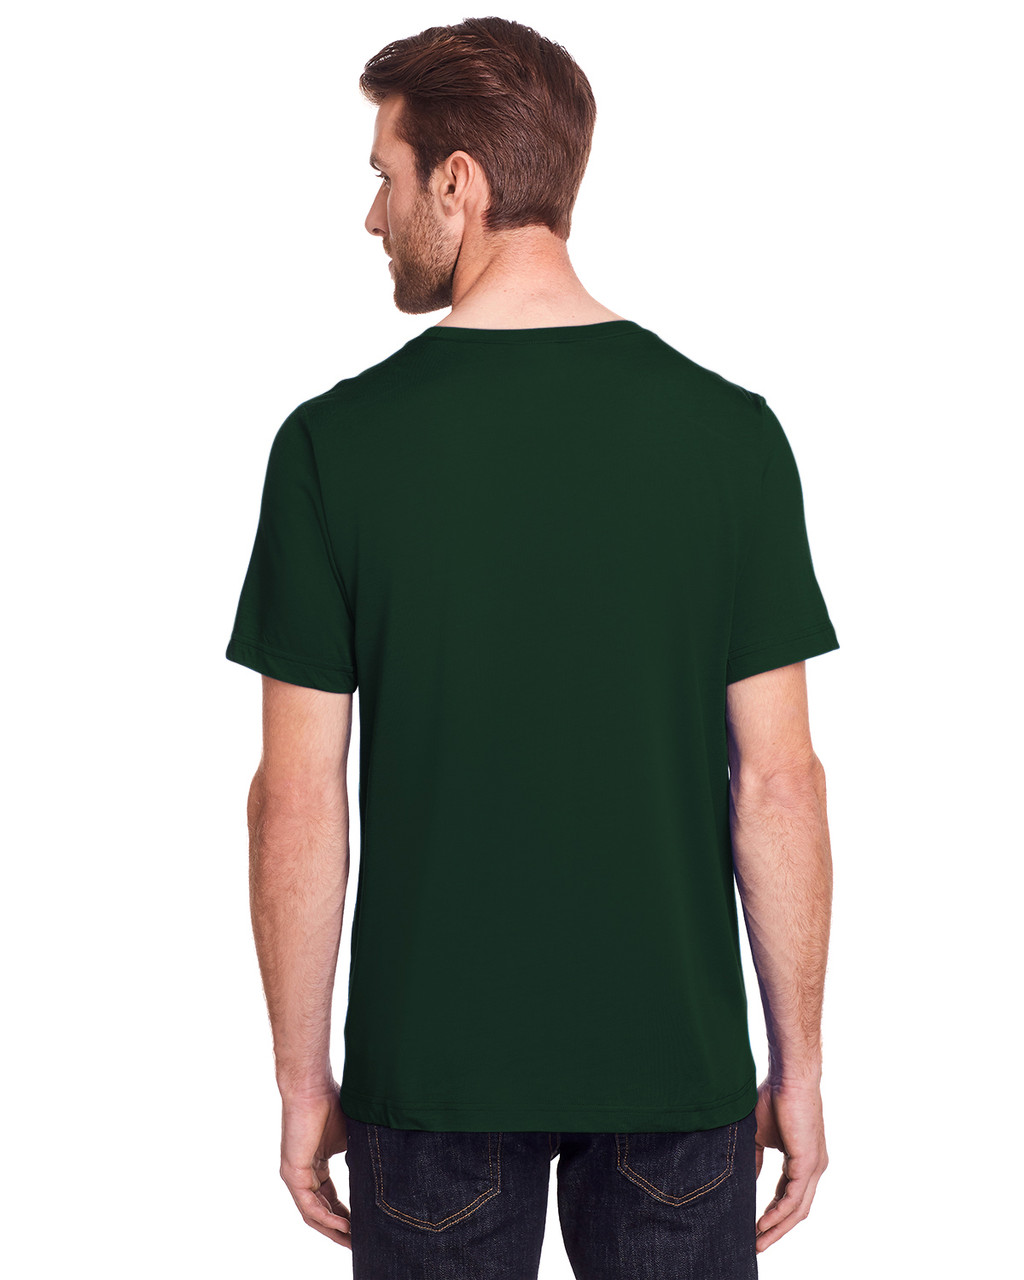 Forest - Back, CE111 Core 365 Adult Fusion ChromaSoft Performance T-Shirt | BlankClothing.ca